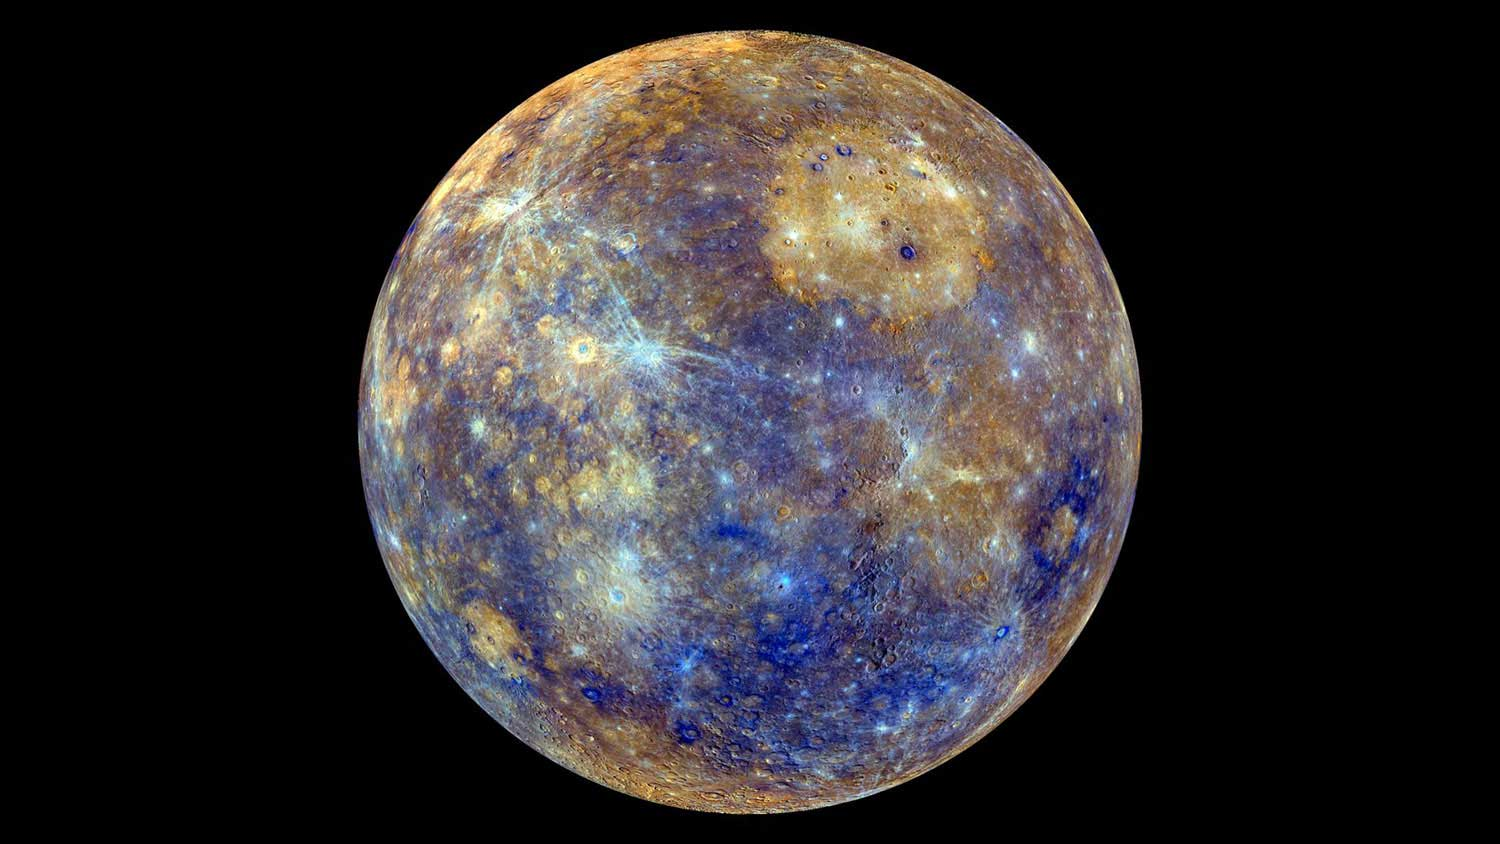 The colors of Mercury, the solar system's innermost planet, are enhanced in this image, based on data from NASA's Mercury-orbiting MESSENGER spacecraft.